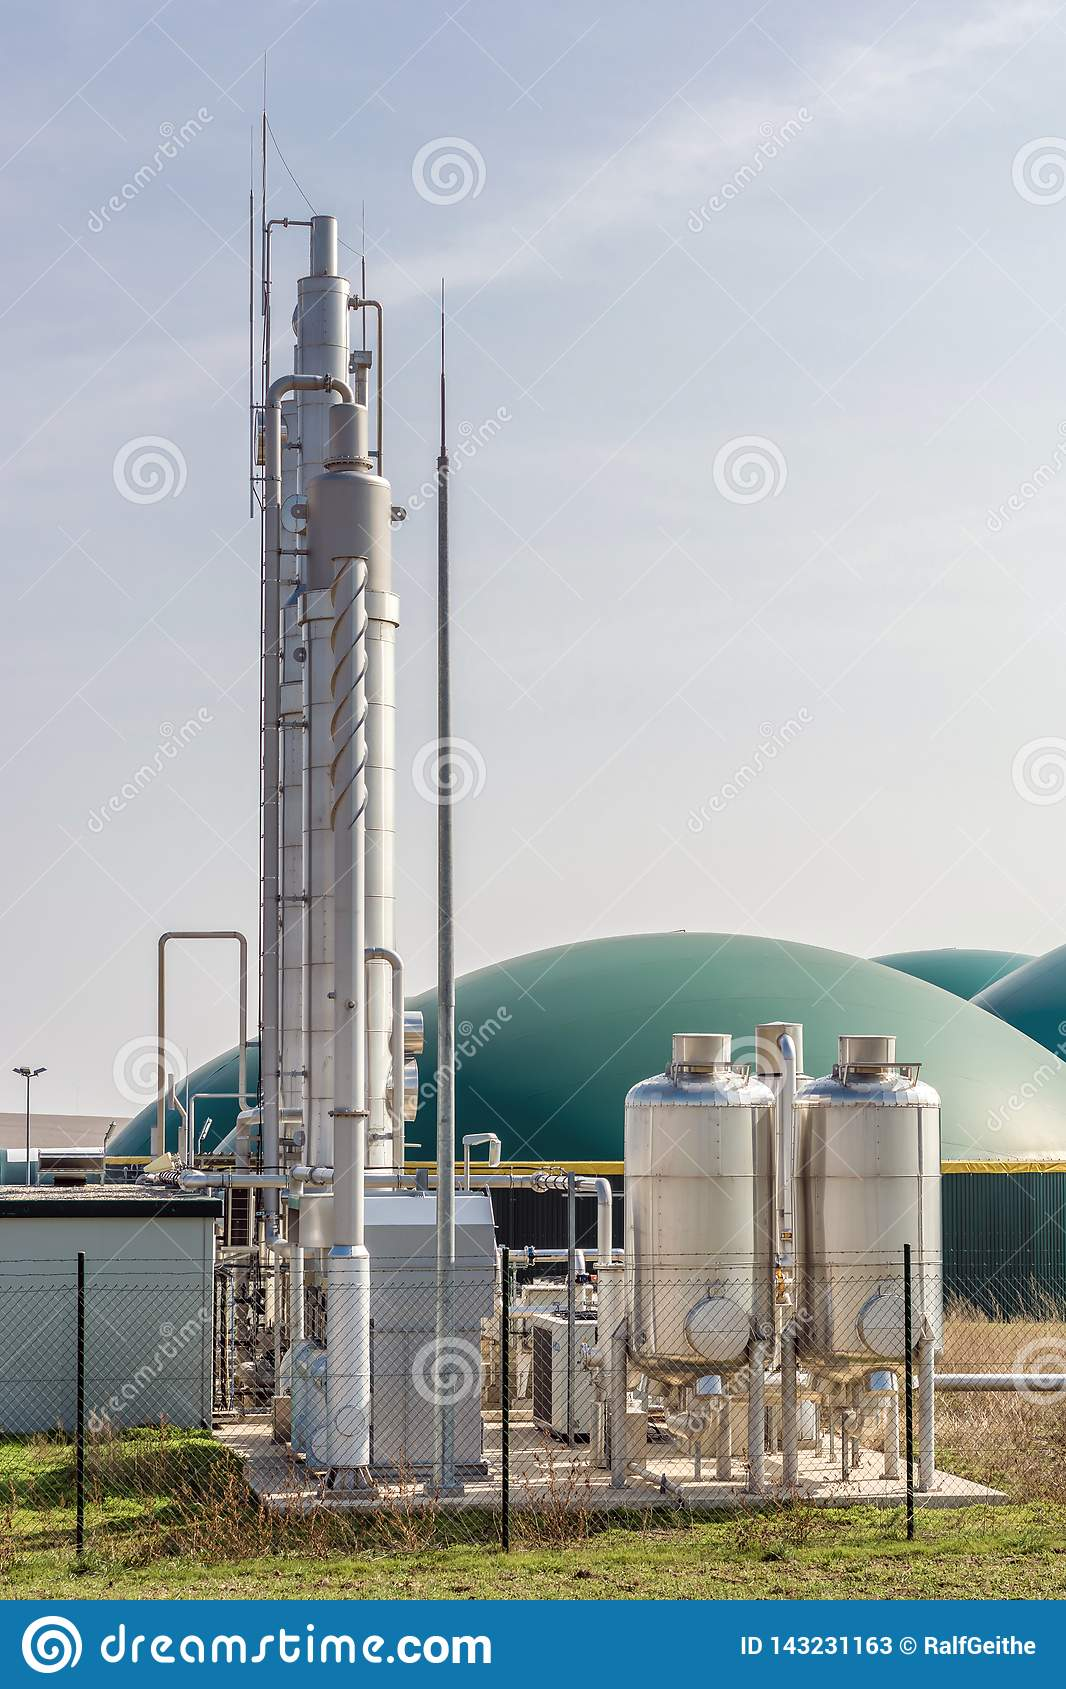 Modern Biogas Plant For The Production Of Electricity, Heat